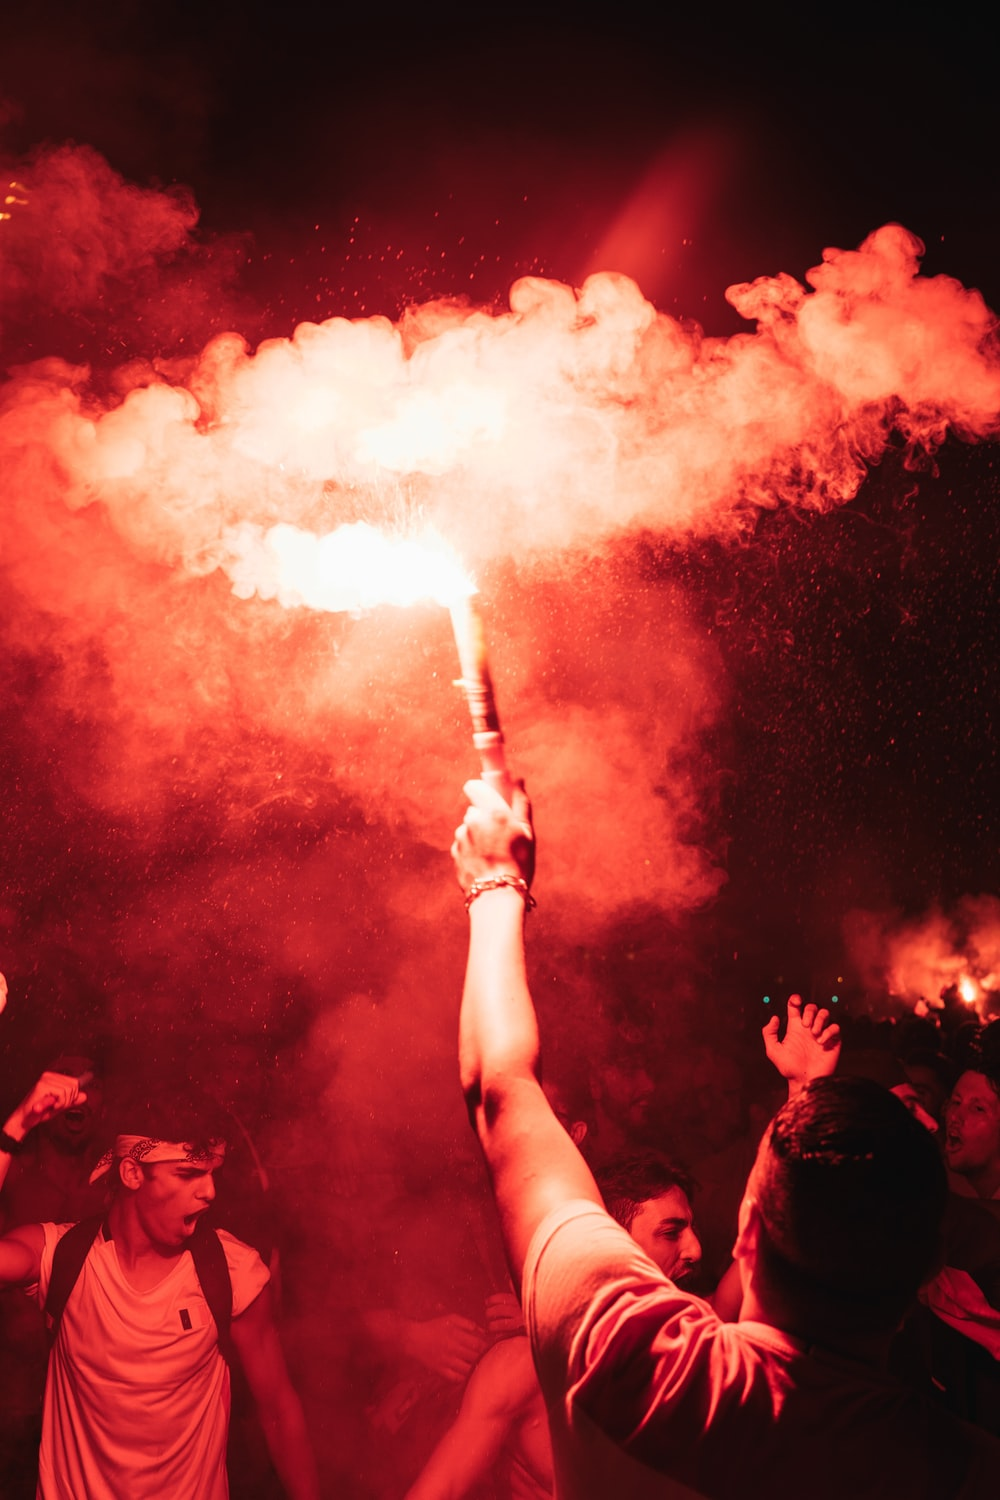 Red Smoke Pictures Download Free Images On Unsplash